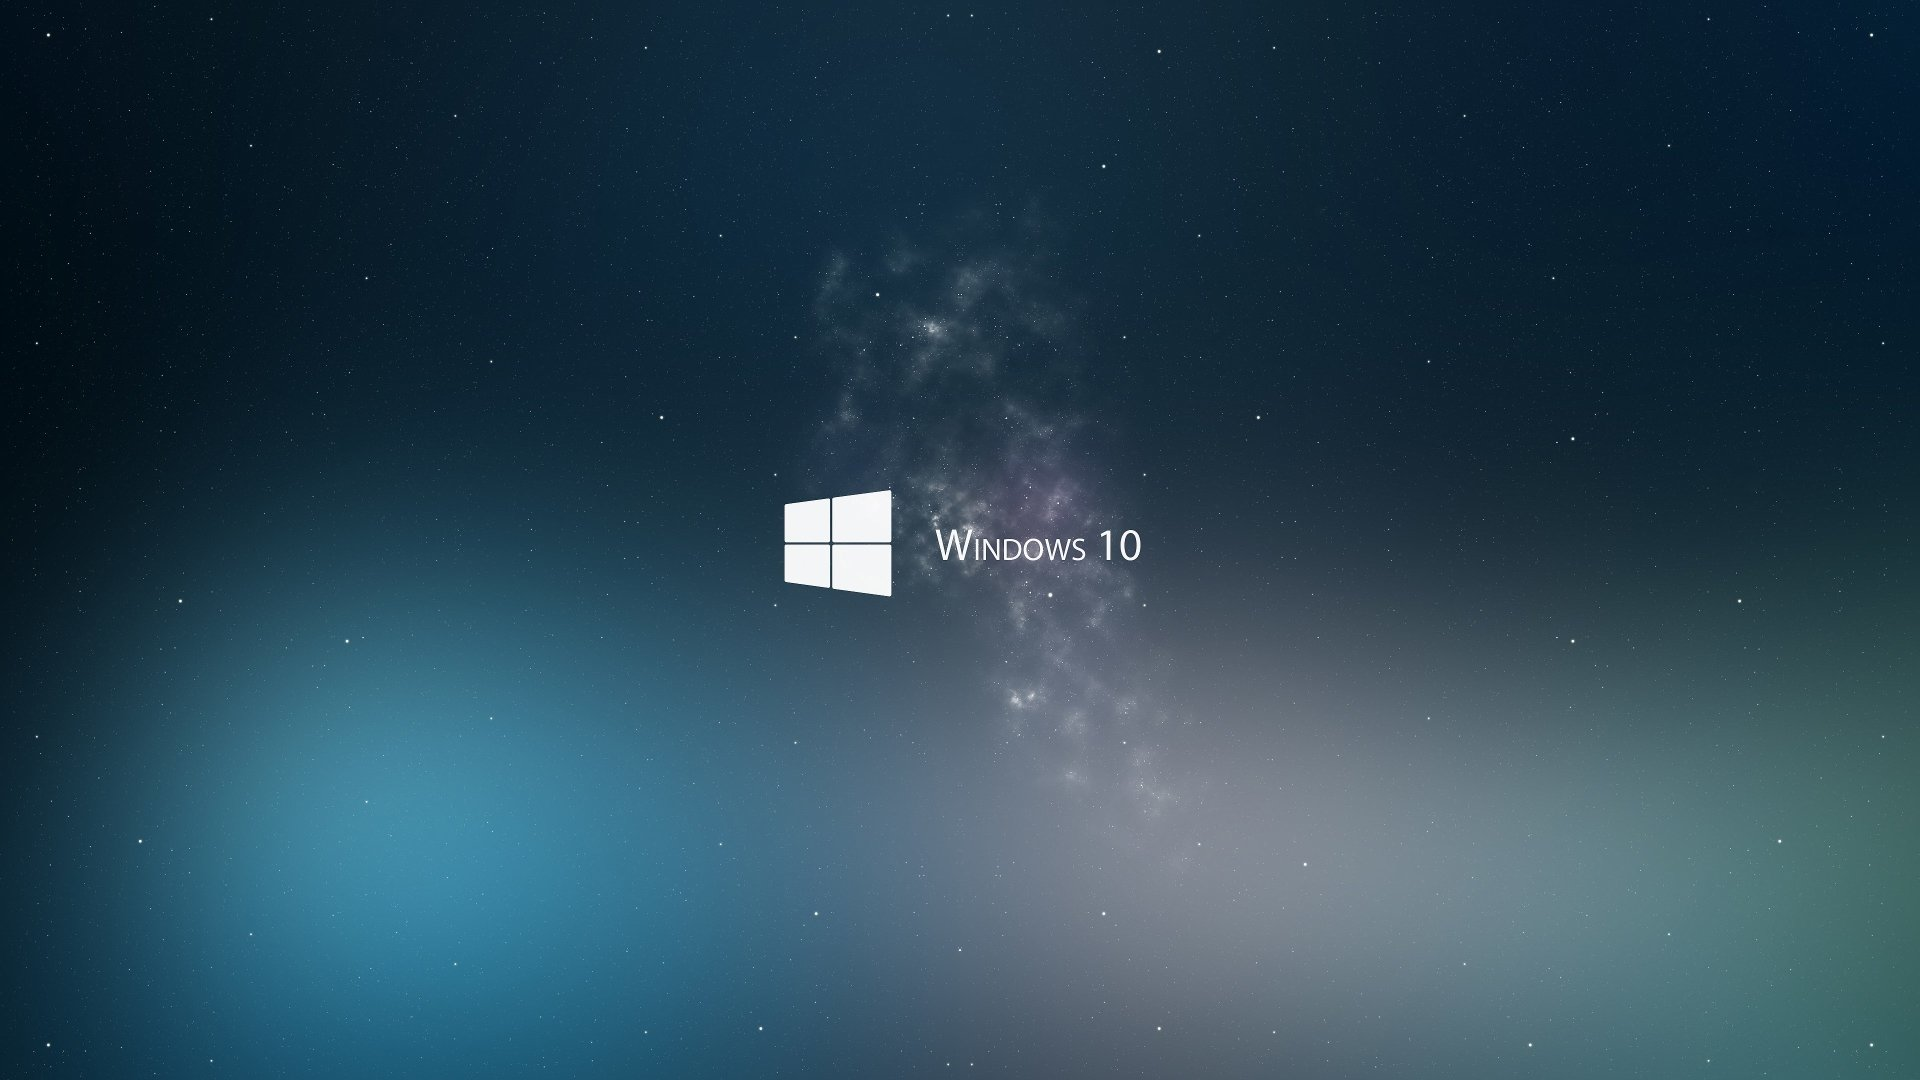 技术 - Windows 10  Windows 壁纸